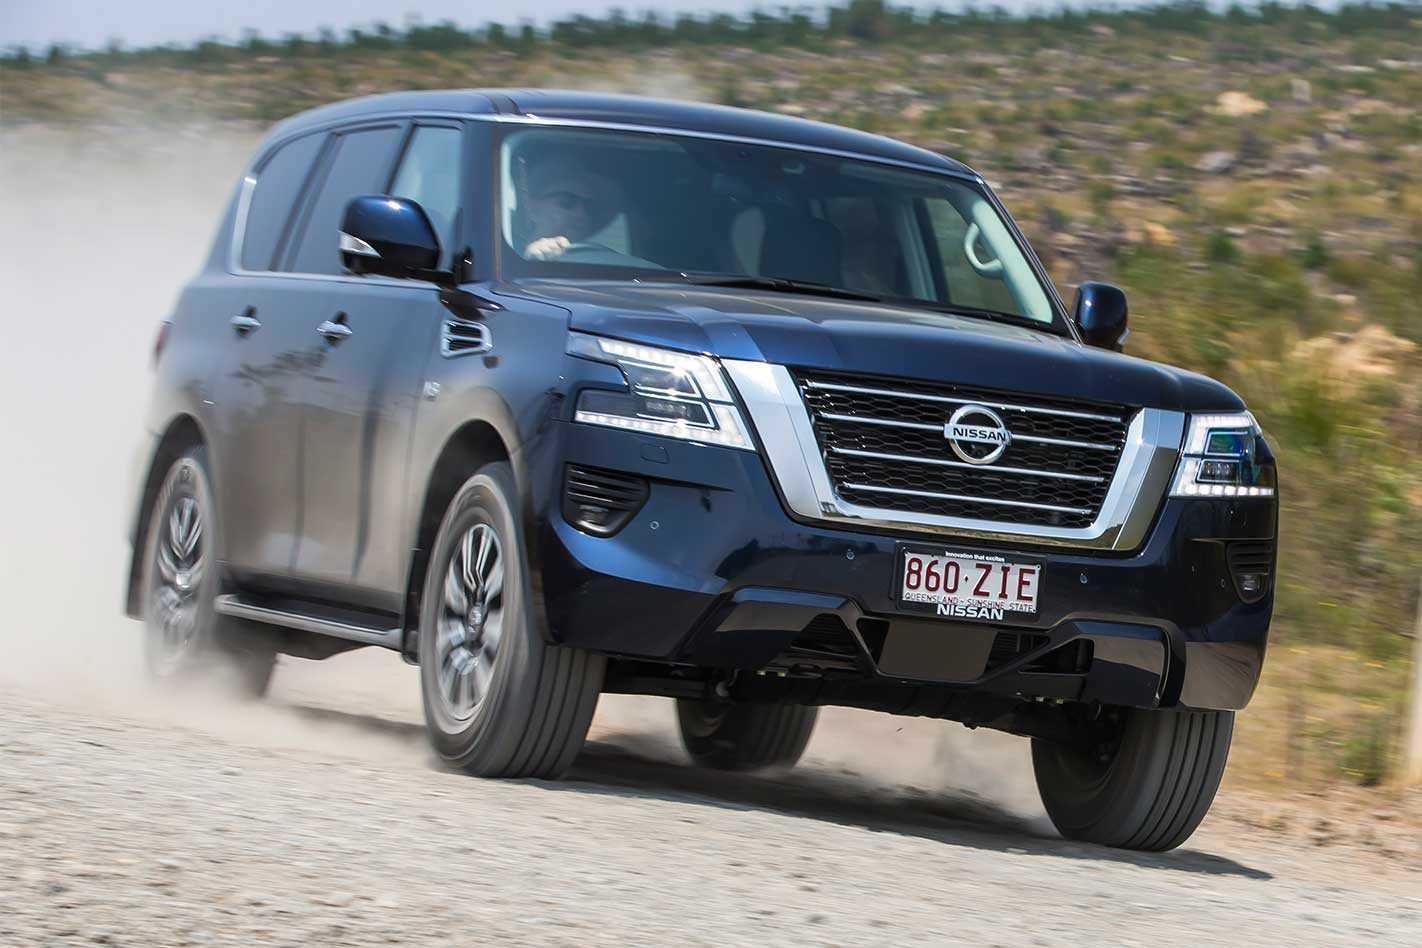 2020 Nissan Patrol Diesel Research New